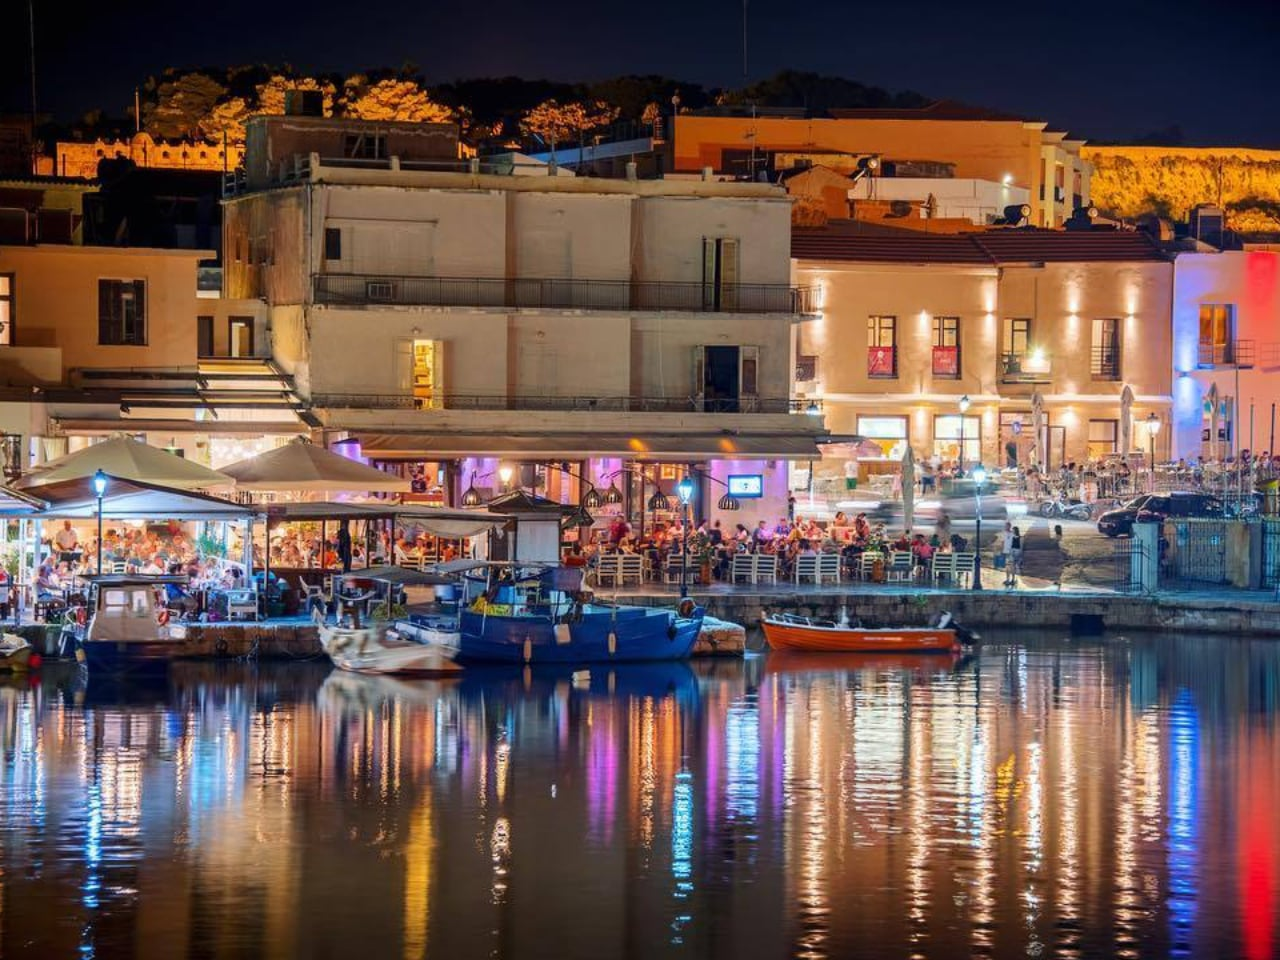 Rethimnon Culinary Walk Private Tour, rethymnon culinary city tour, best culinary tour rethimno crete, rethimno tnings to do, best activities rethimno crete, crete activities, crete travel activities